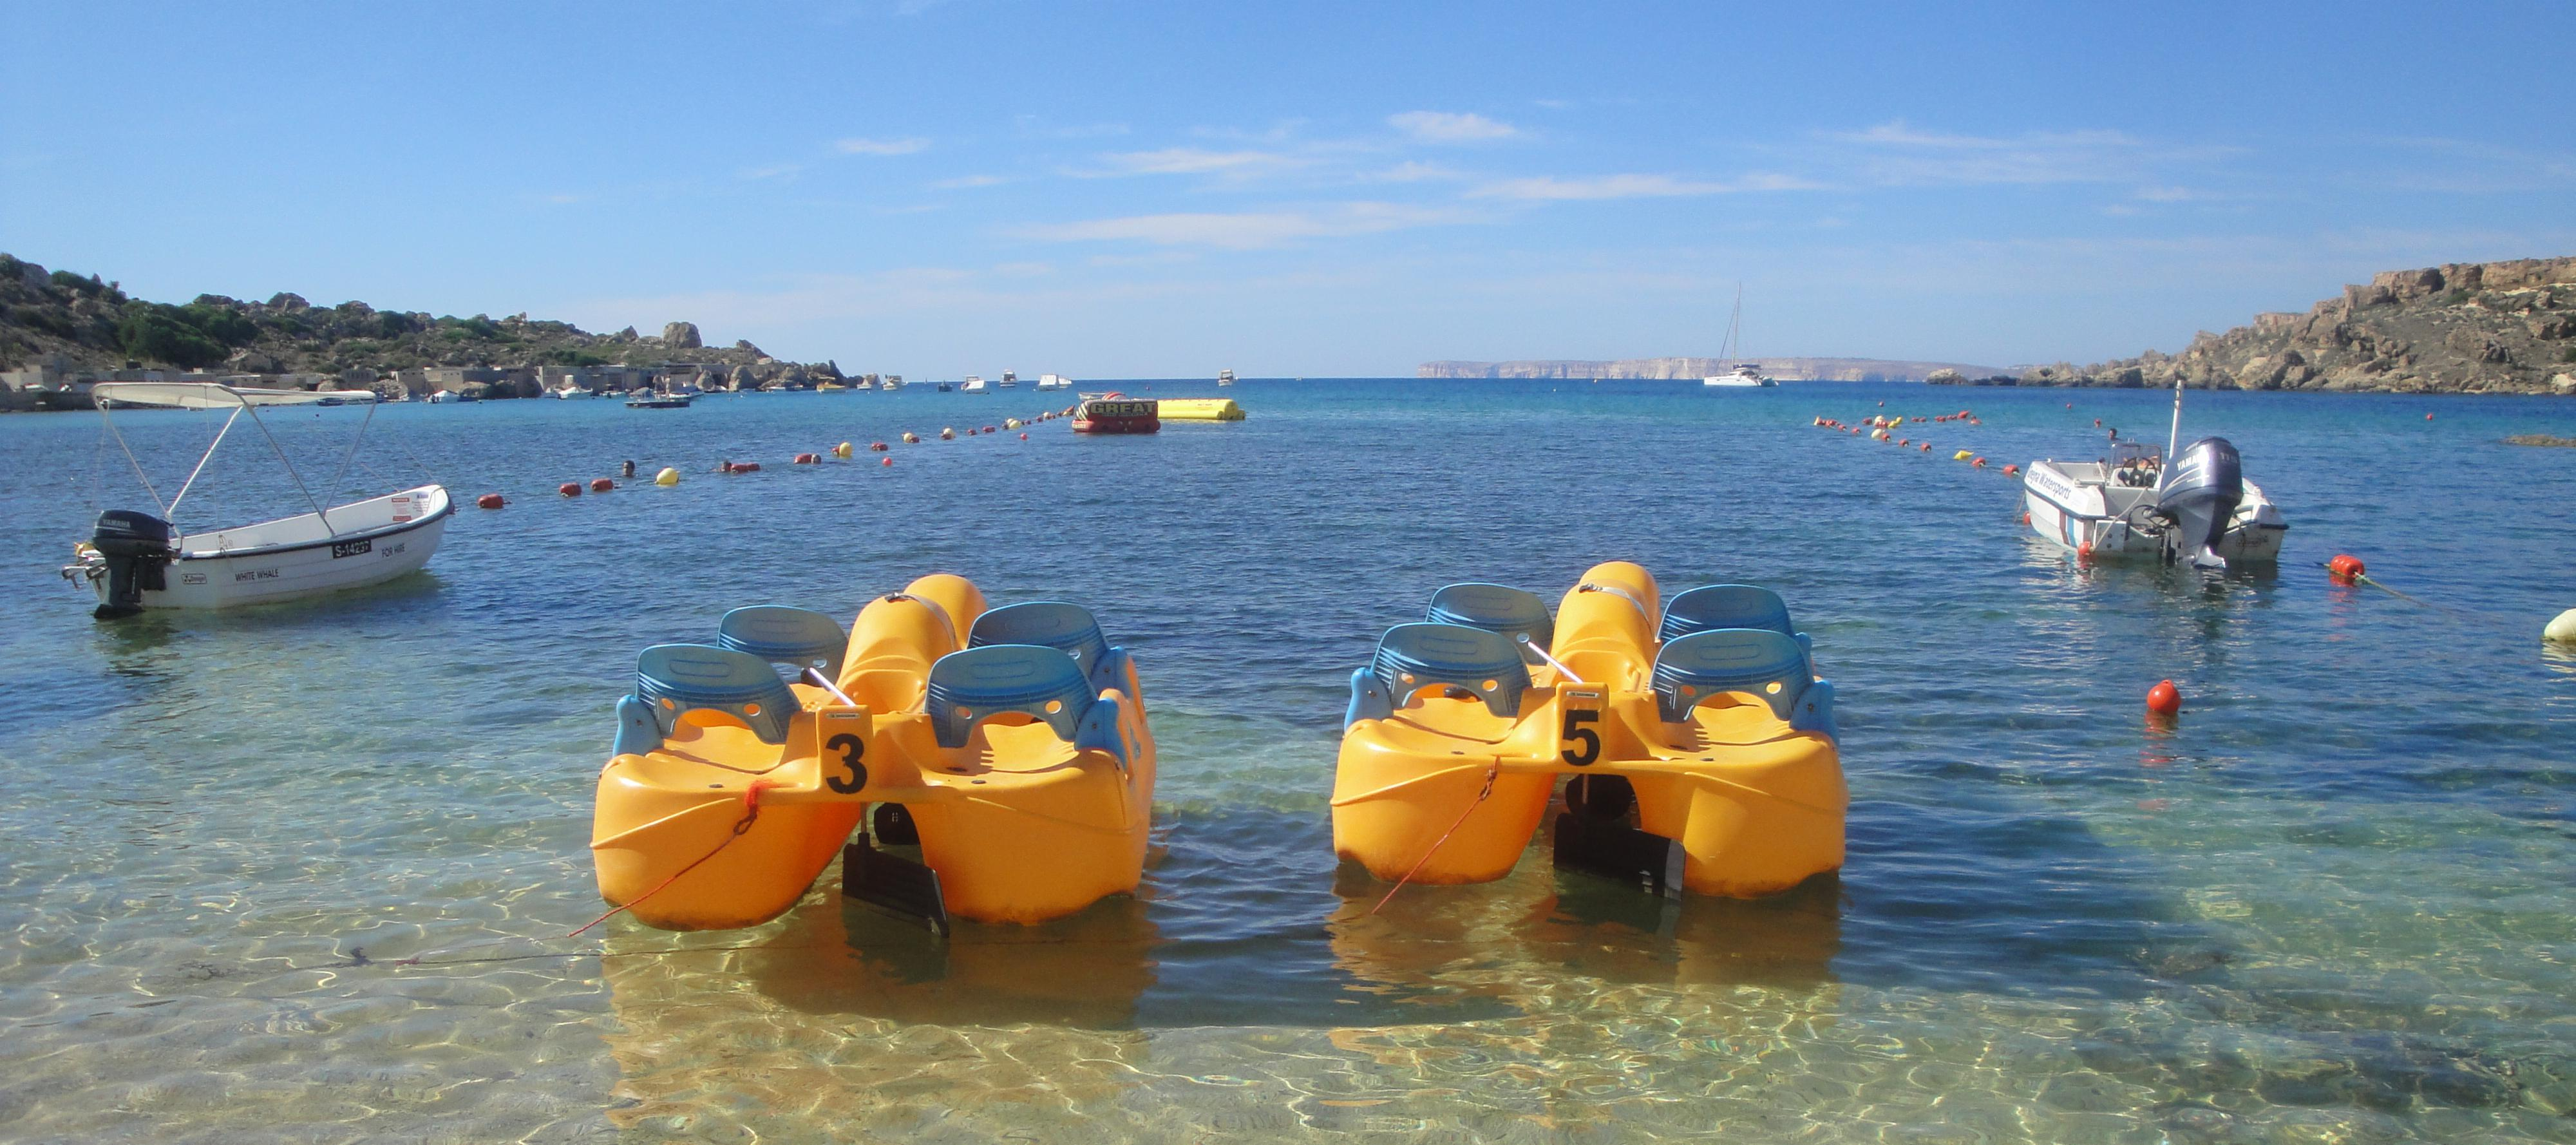 Paddle boats at the beach in Malta